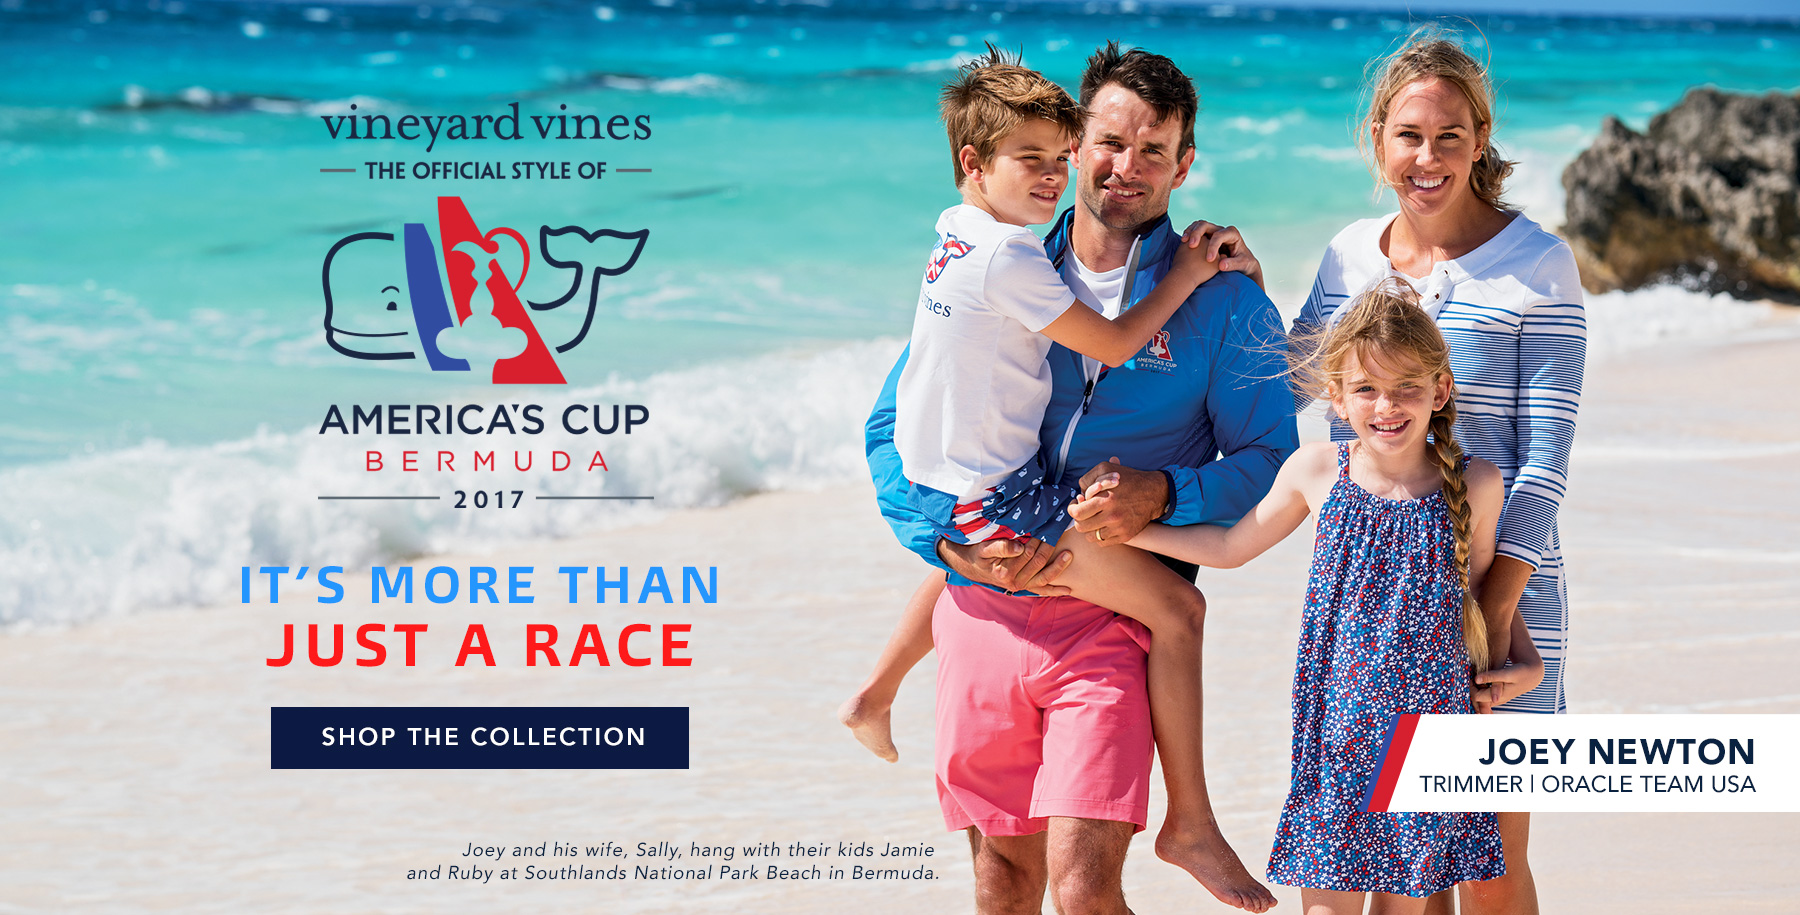 Americas Cup. It's more then just a race. Shop the collection. Joey and his wife, Sally, hang with thier kids Jamie and Ruby at Southlands National Park Beach in Bermuda. Joey Newton, Trimmer, Oracle Team USA.